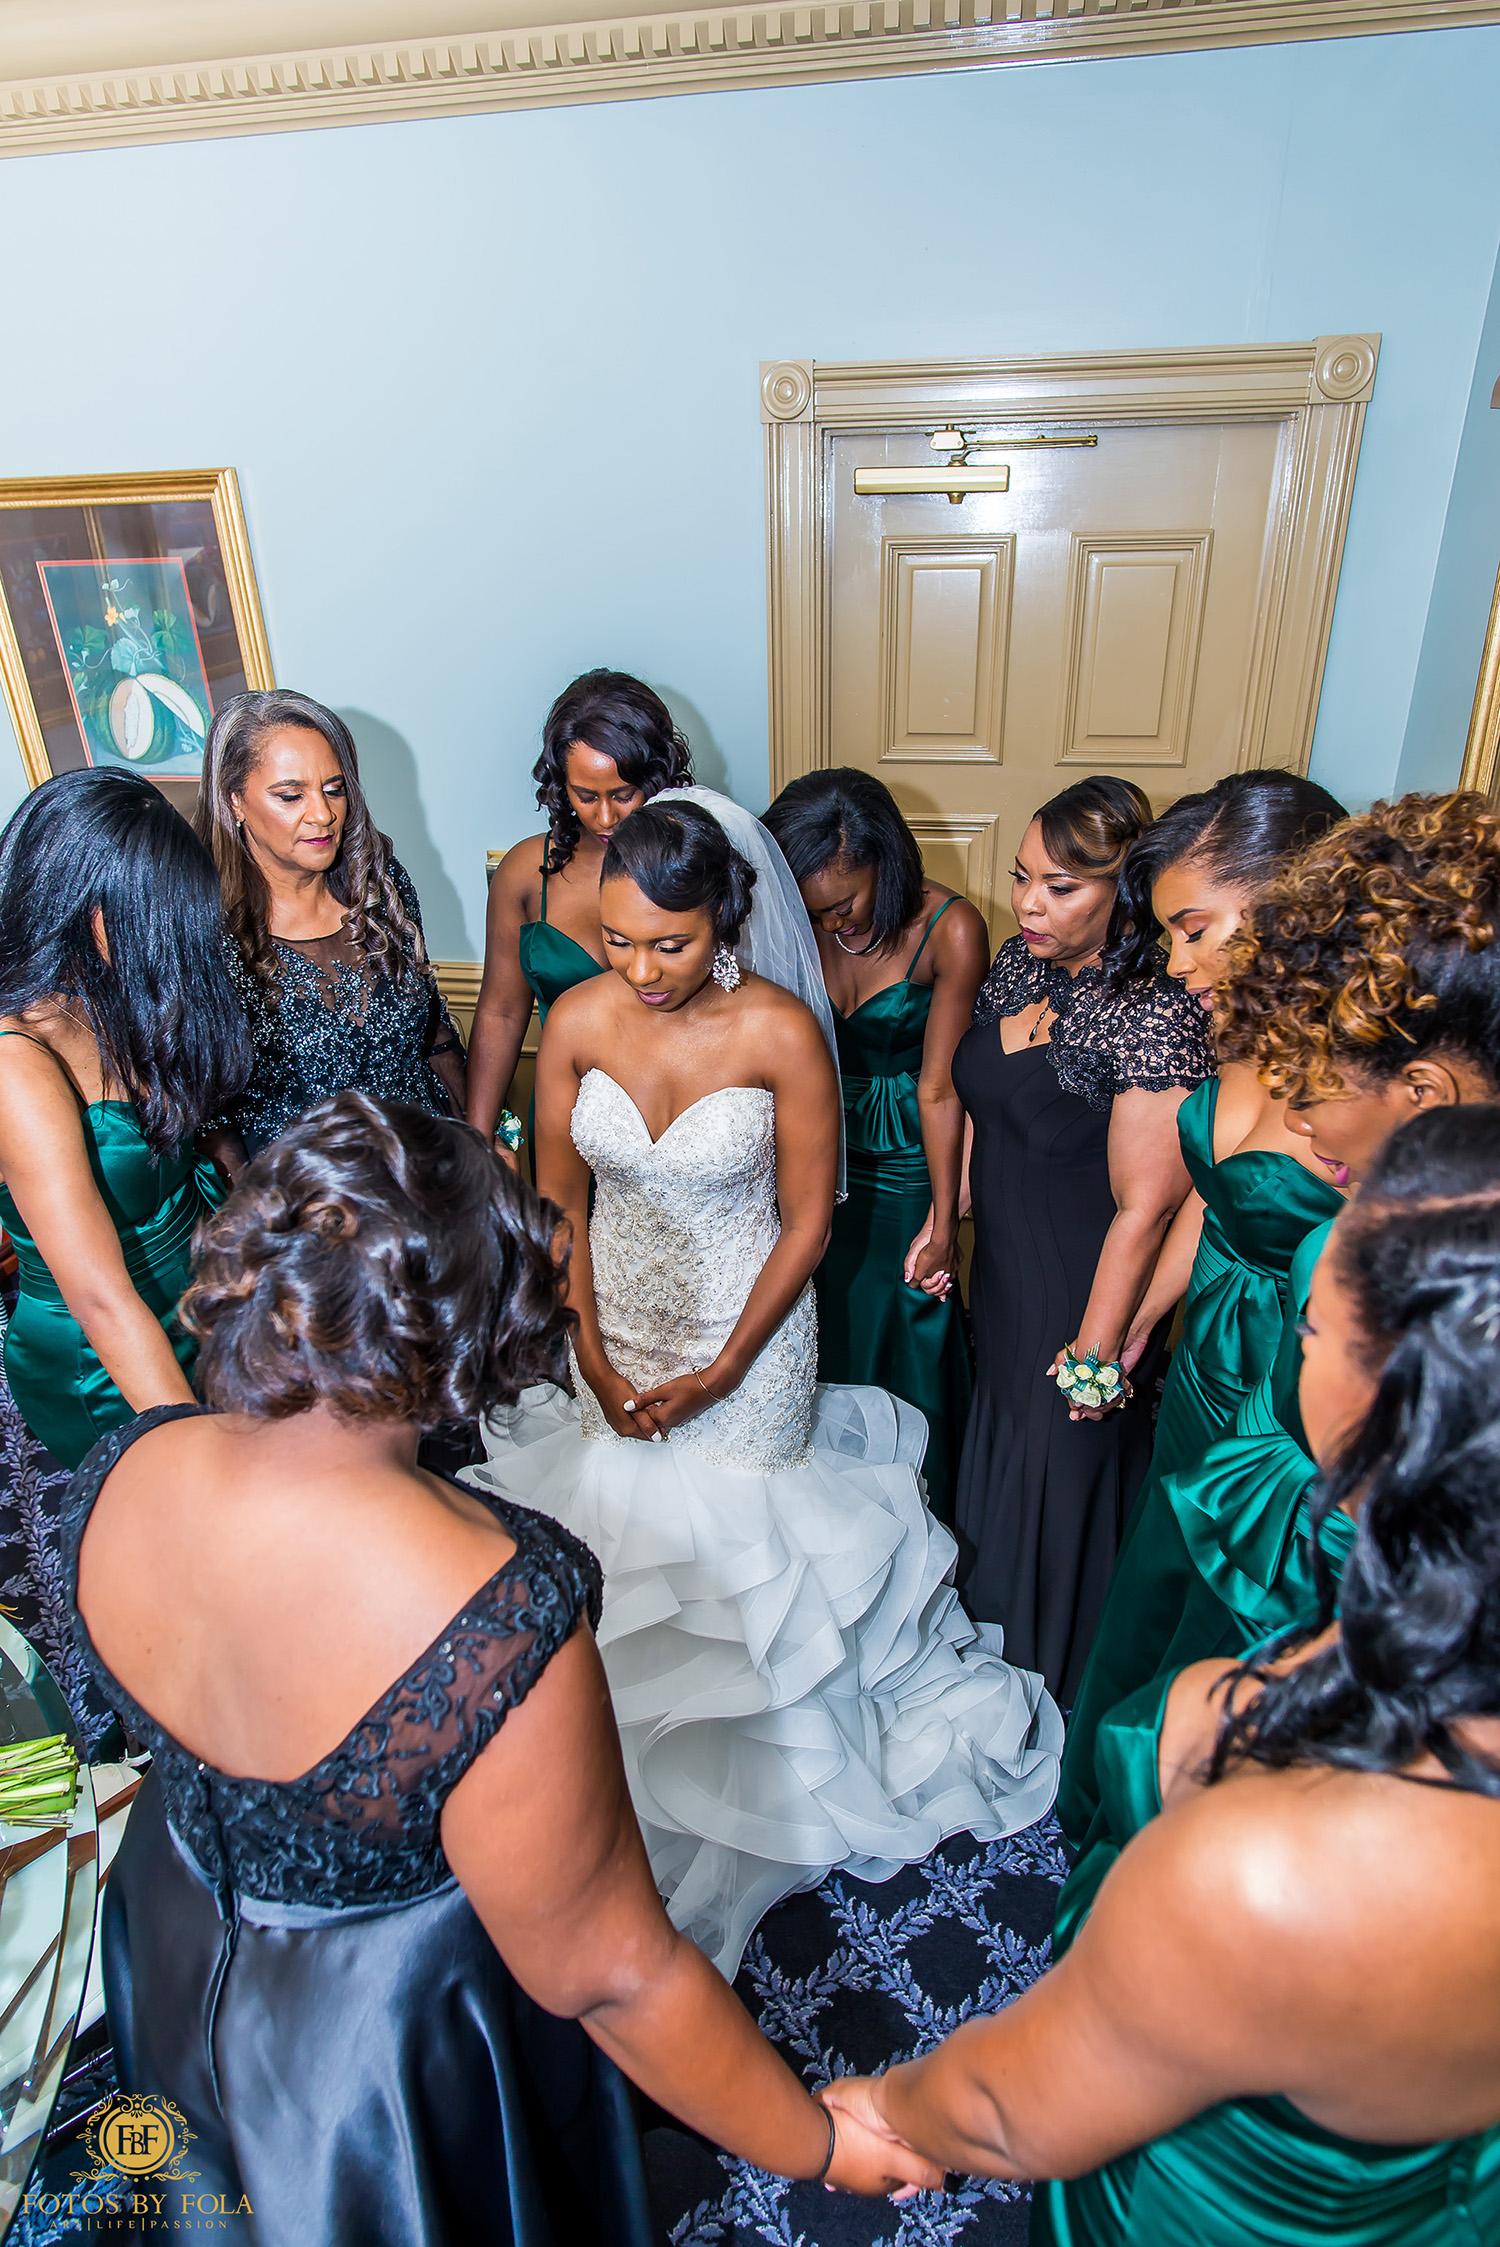 12. Fotos by Fola | Atlanta Wedding Photographer | Peachtree Club Wedding